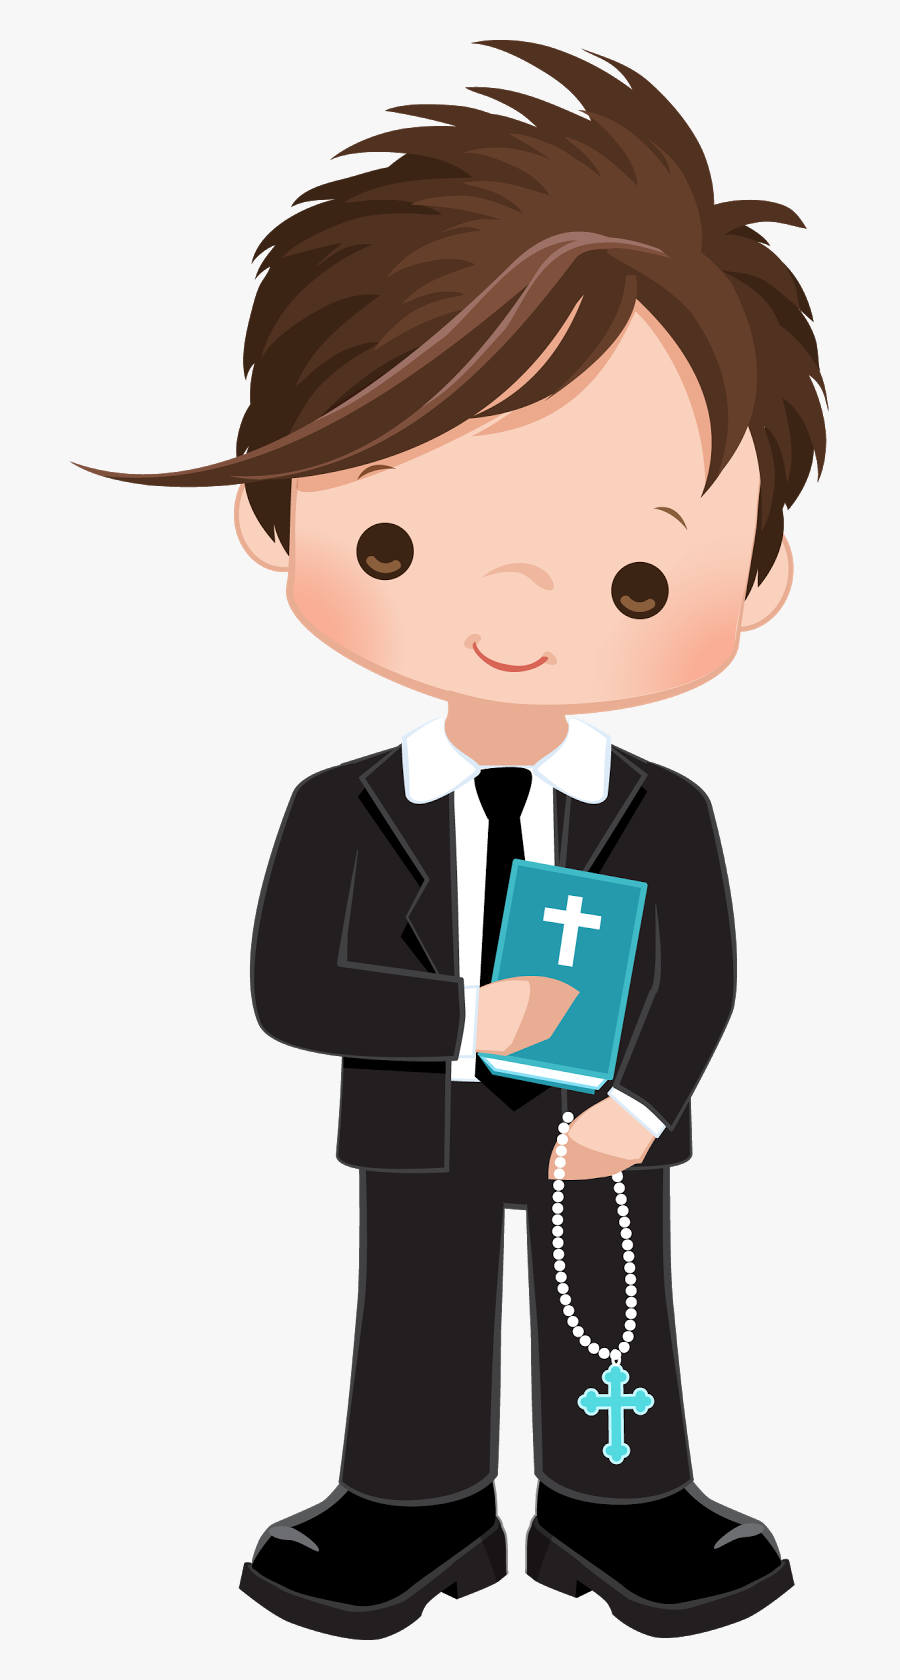 Primera Comunion Ni%c3%b1os %281%29 - Boy First Communion Clipart, Transparent Clipart